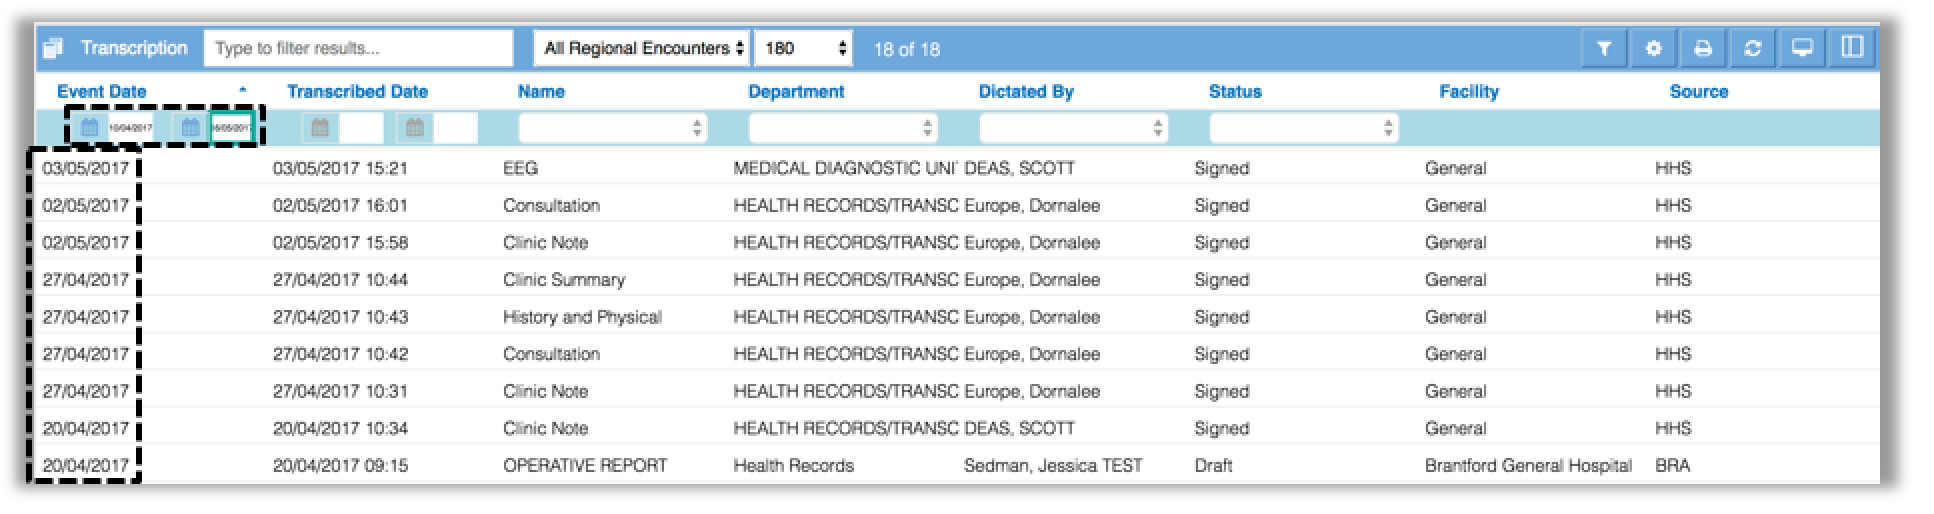 Image showing the list of transcriptions for the selected date range